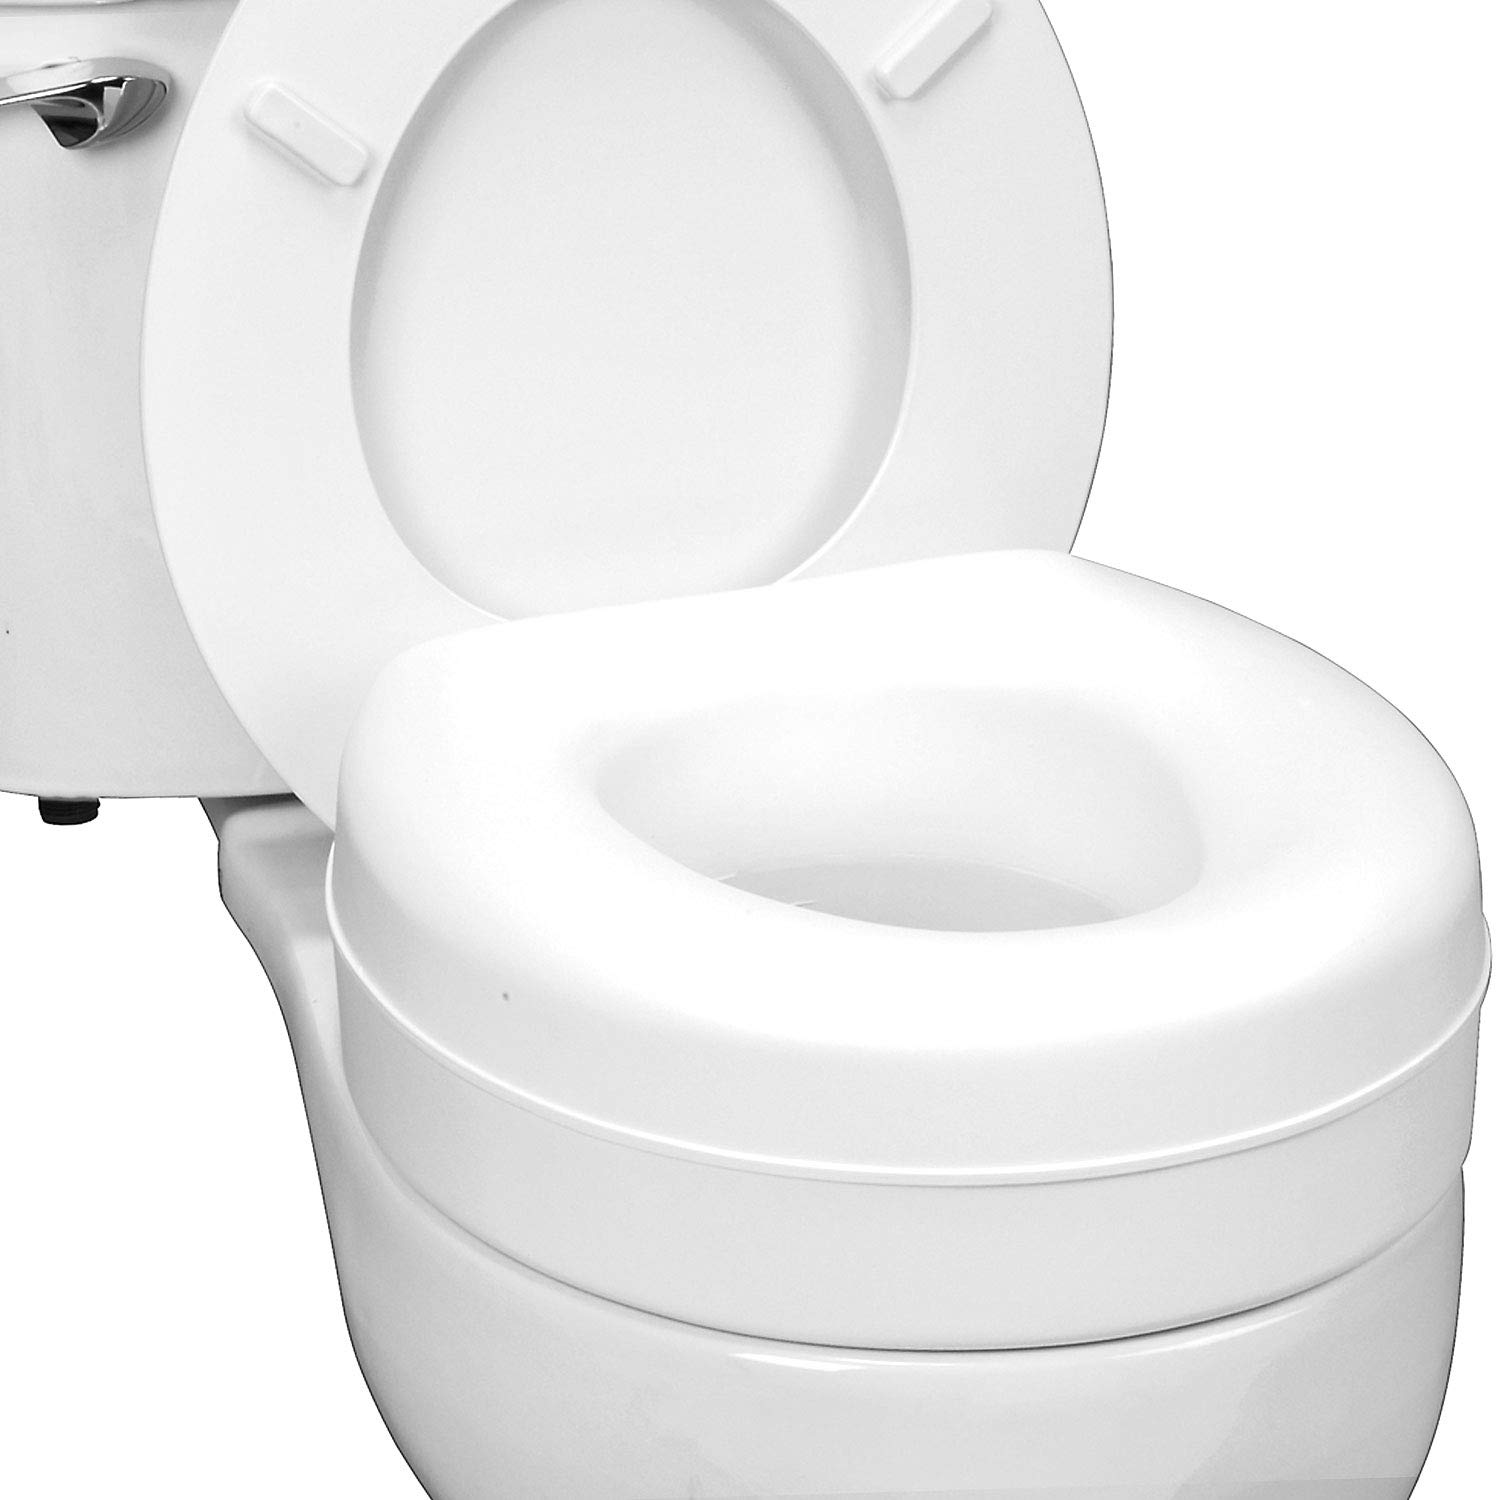 Brilliant Healthsmart Portable Elevated Raised Toilet Seat Riser That Fits Round And Elongated Seats White Short Links Chair Design For Home Short Linksinfo